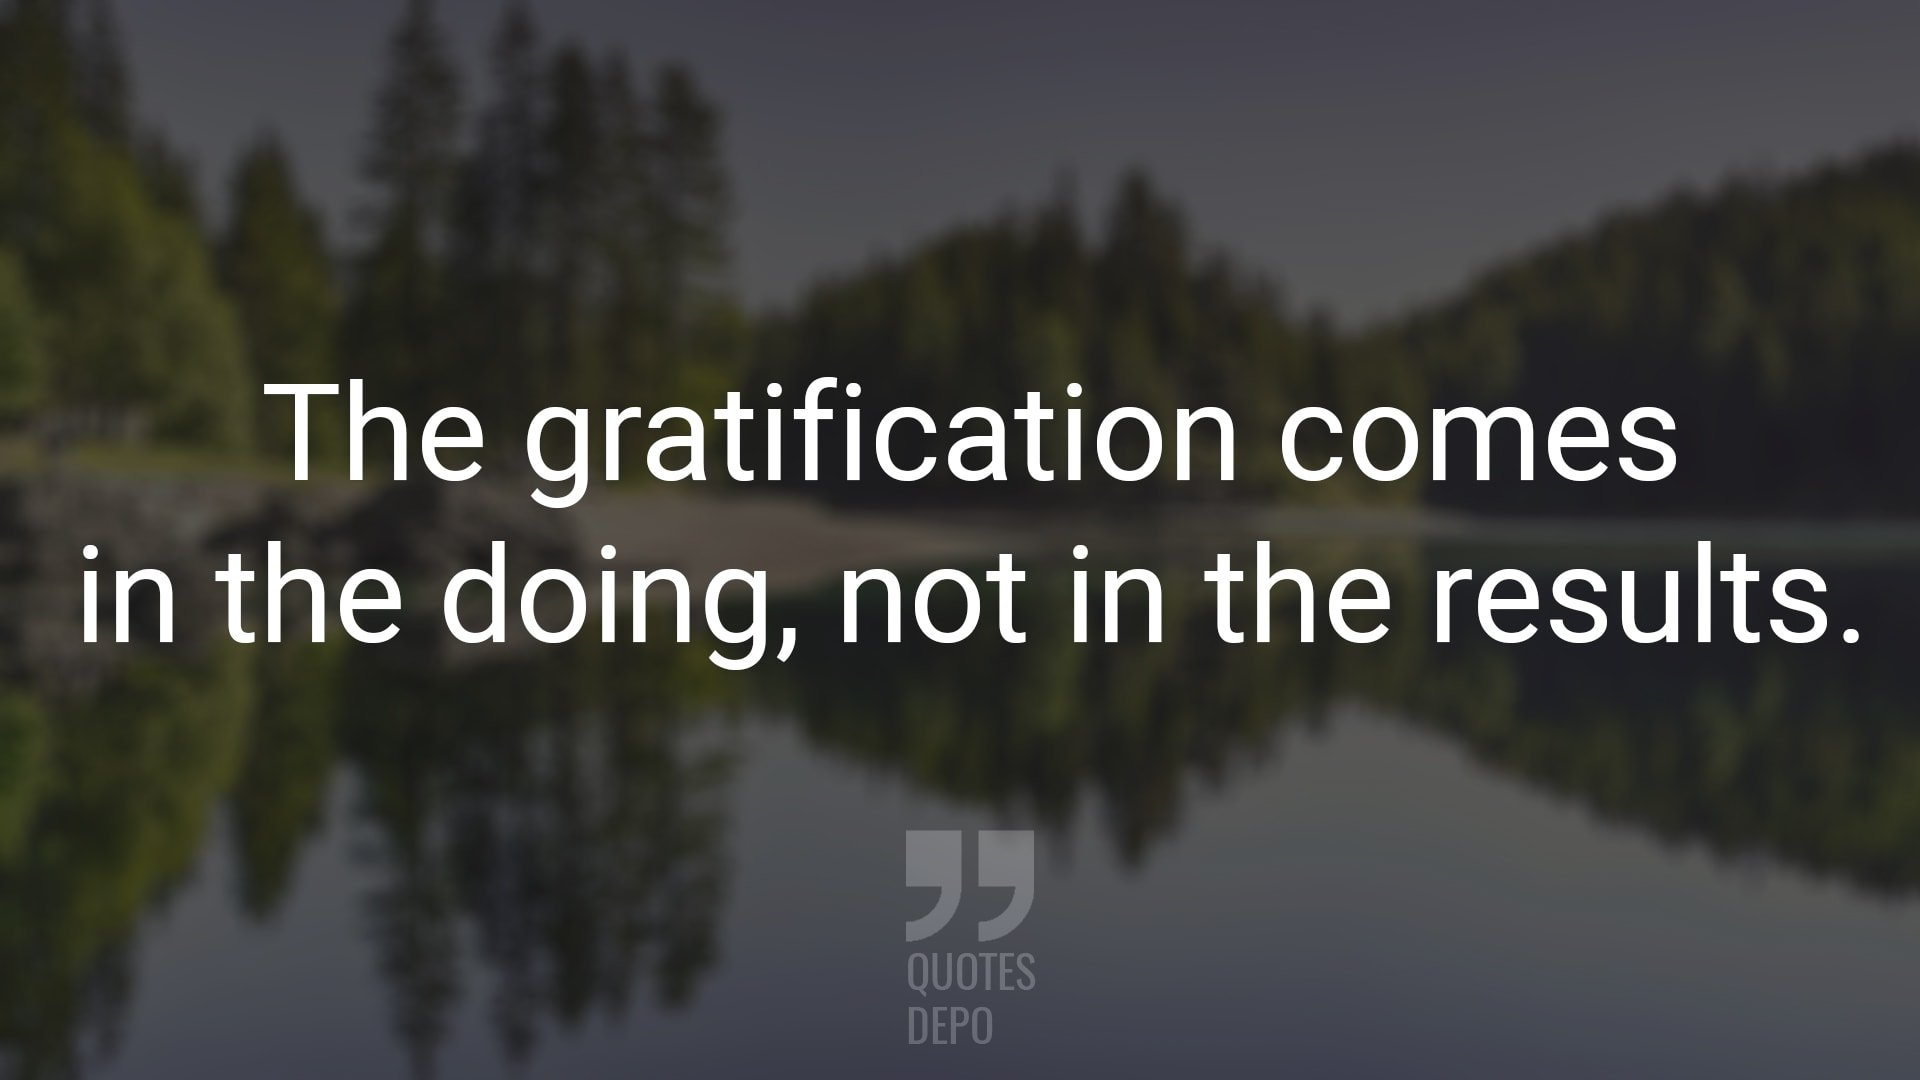 The Gratification Comes in the Doing